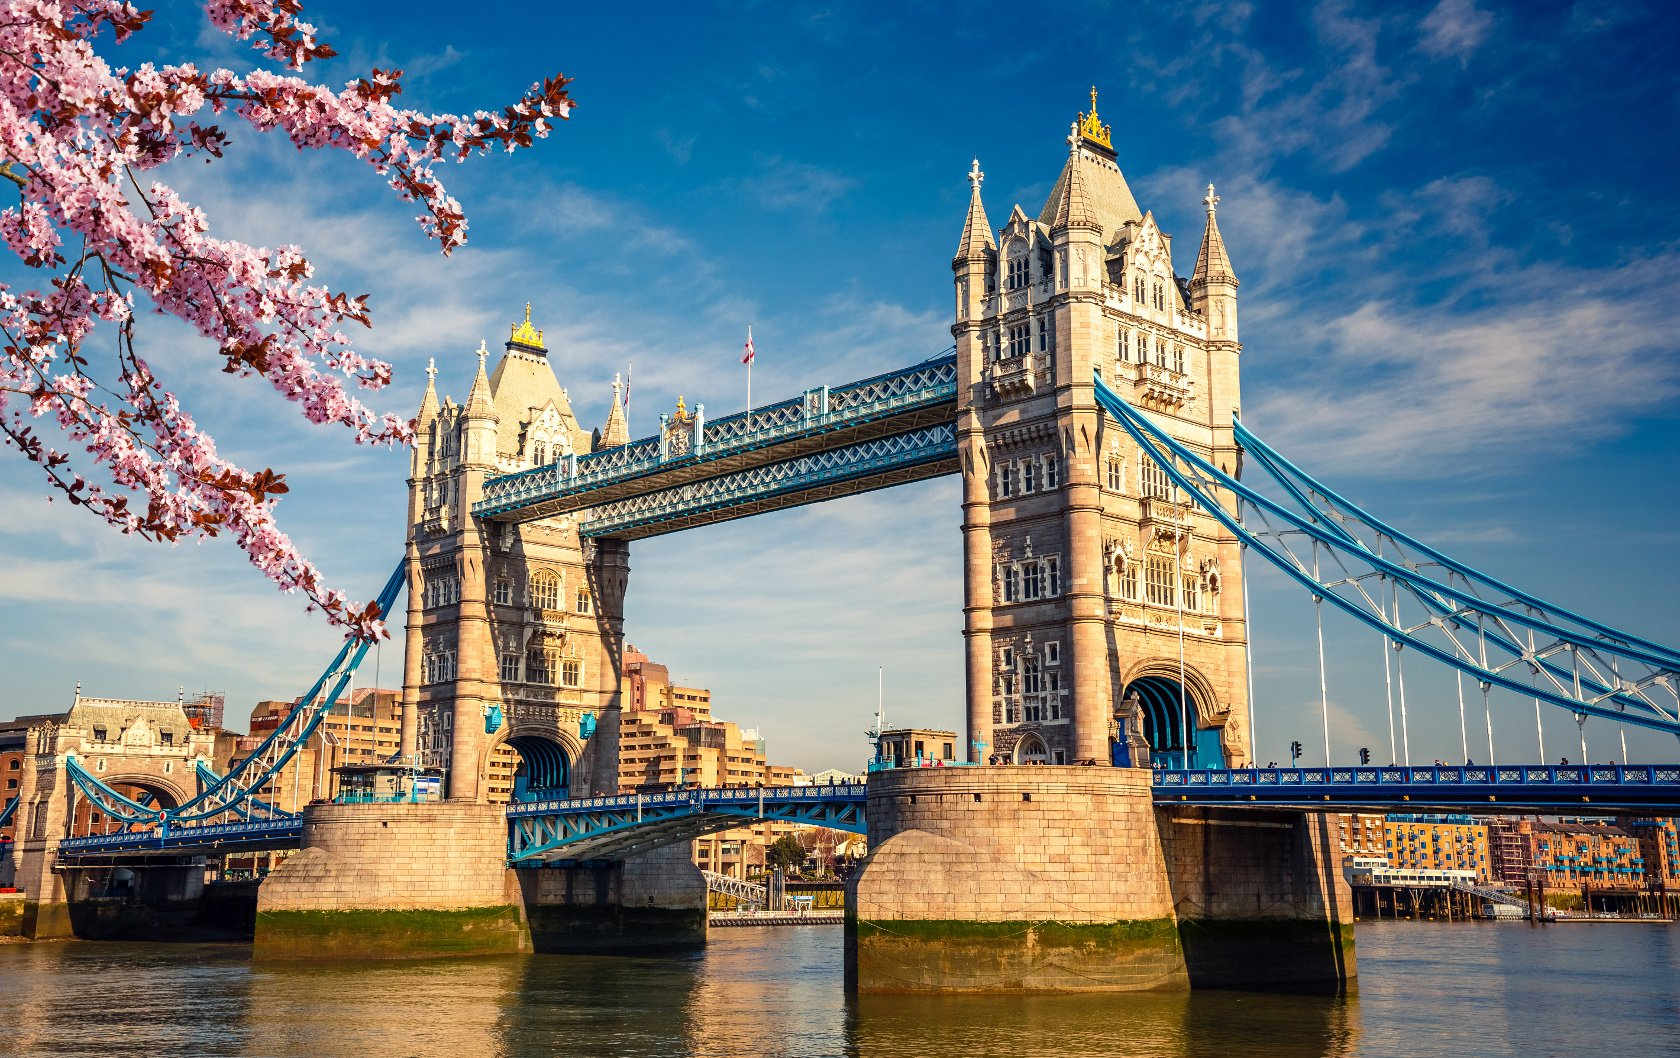 Inspiring Ideas for Spring and Easter in London   London Perfect London is lovely in spring  when warmer weather kicks in  daffodils and  crocuses bloom  and Easter is in the air  Spring in the capital stretches  from March